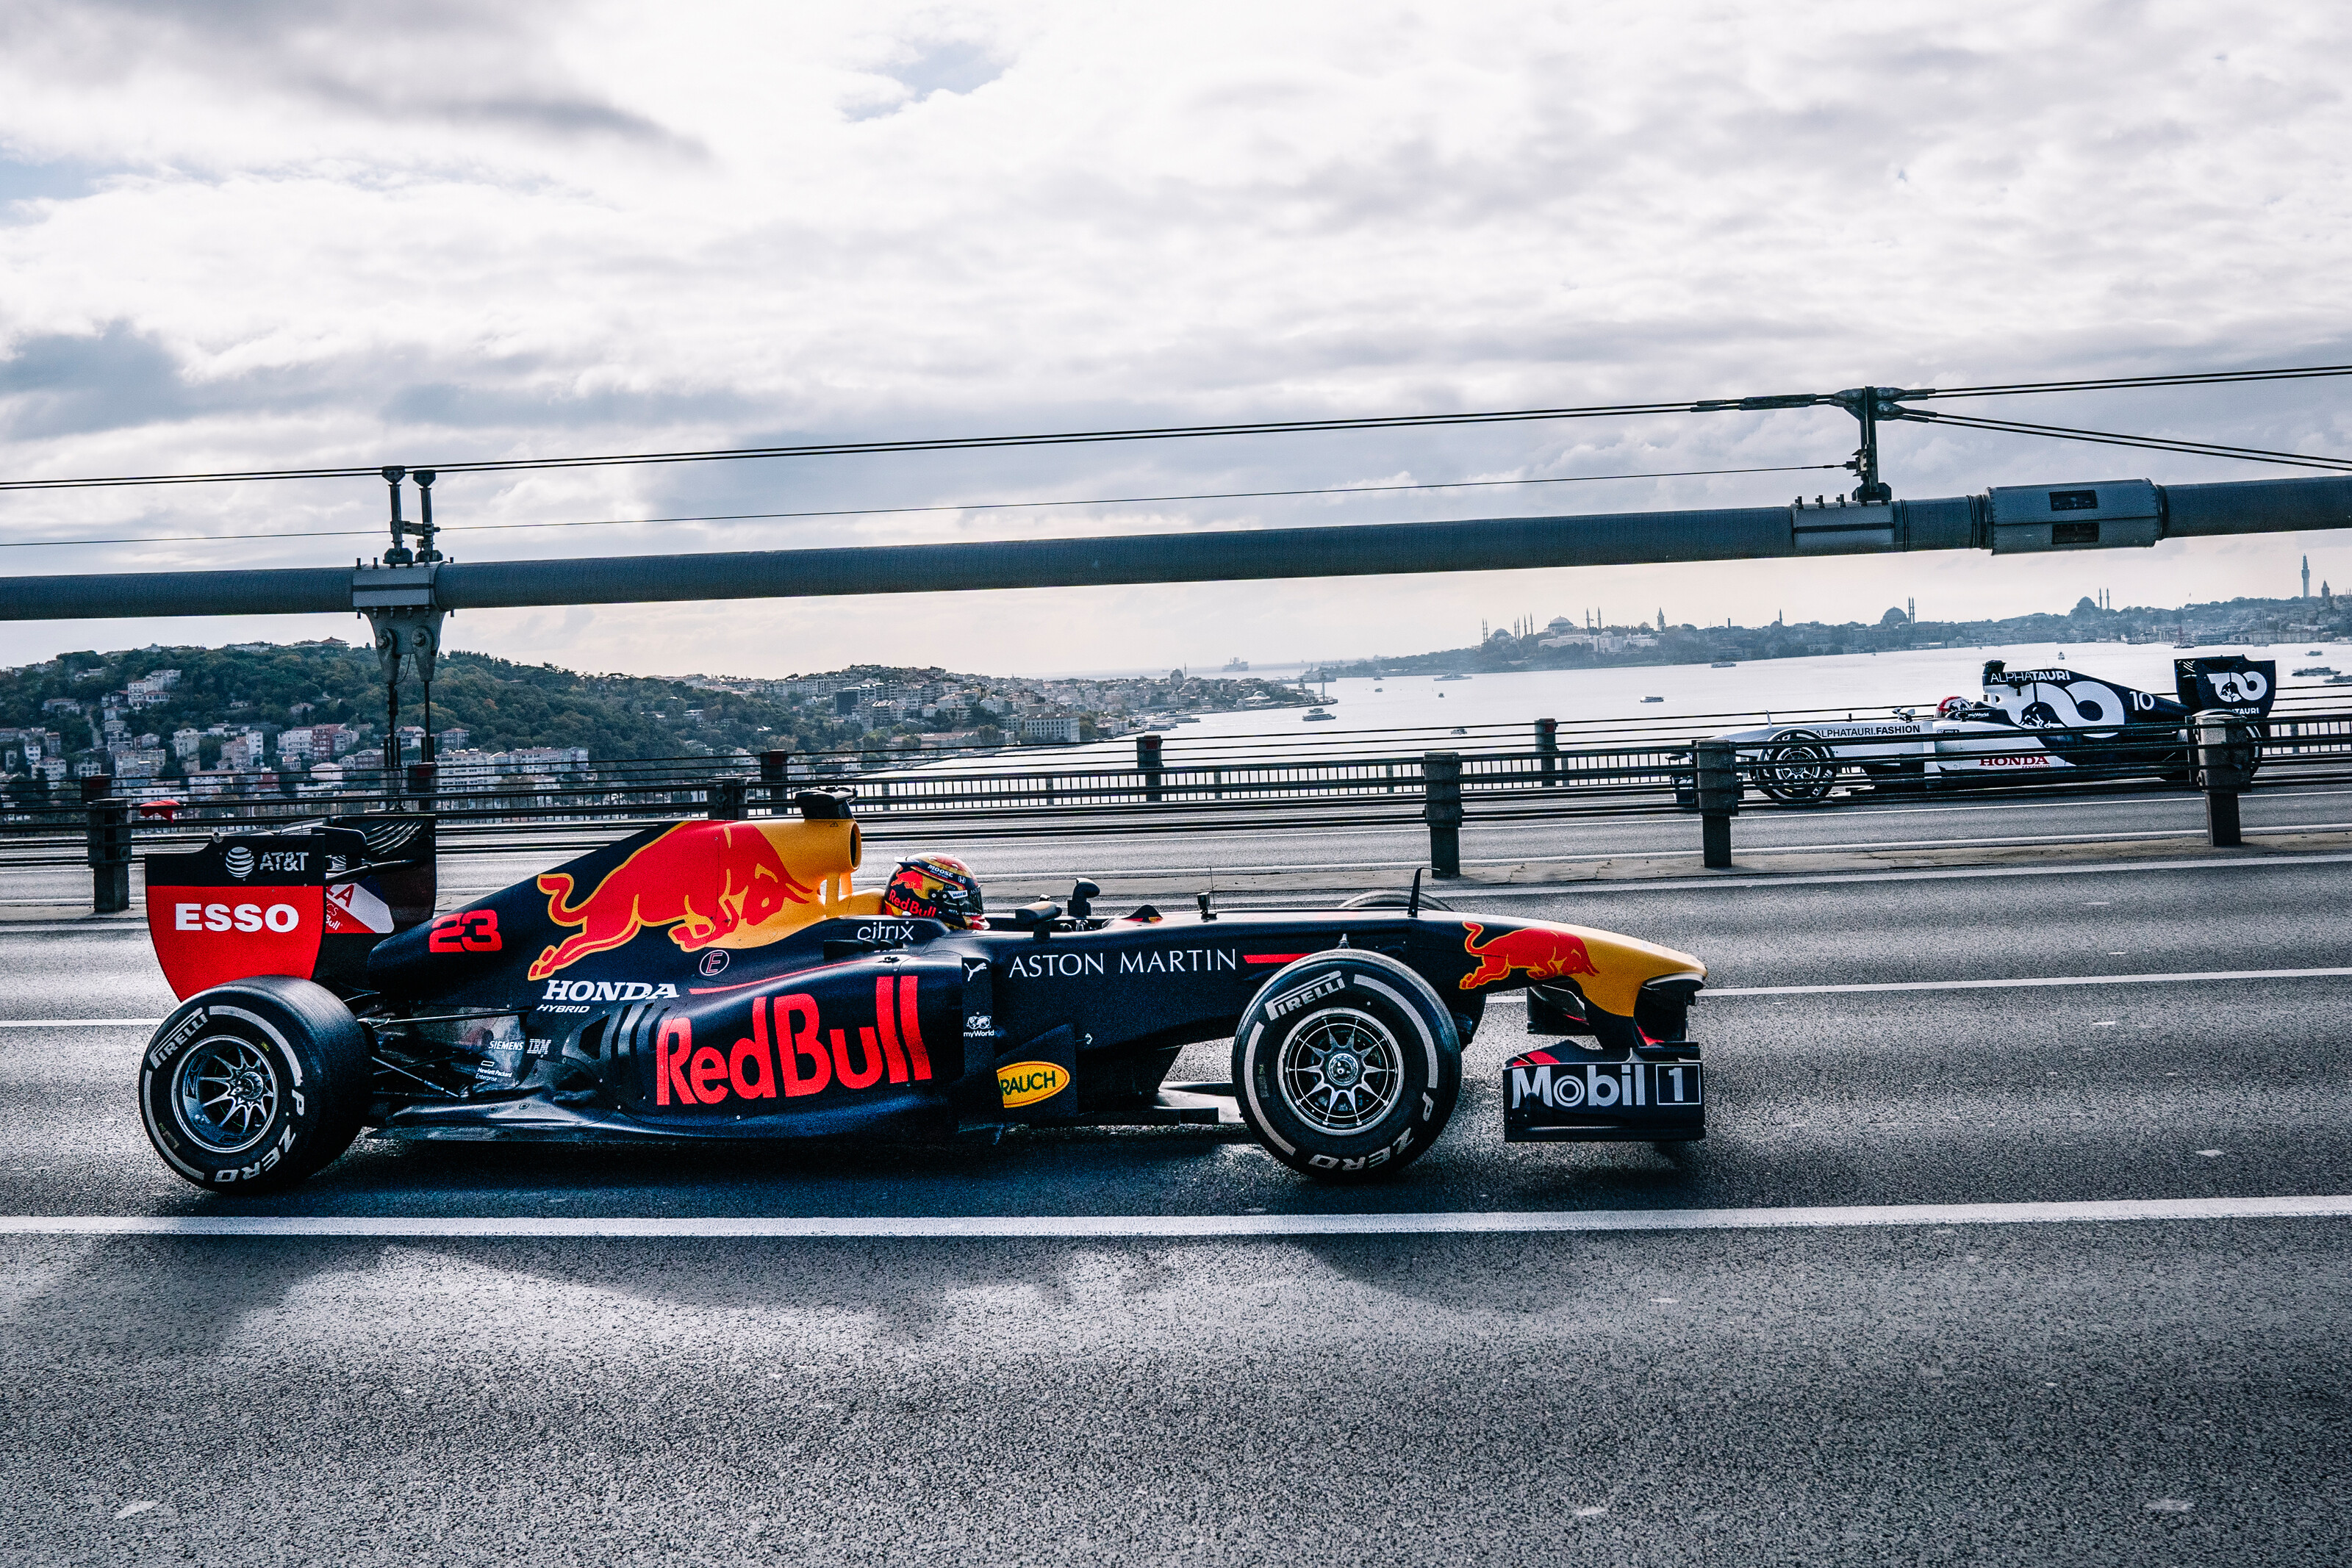 Alexander Albon and Pierre Gasly perform during Project Istanbulls in Istanbul, Turkey on November 10, 2020 // Nuri Yilmazer/Red Bull Content Pool // SI202011110239 // Usage for editorial use only //